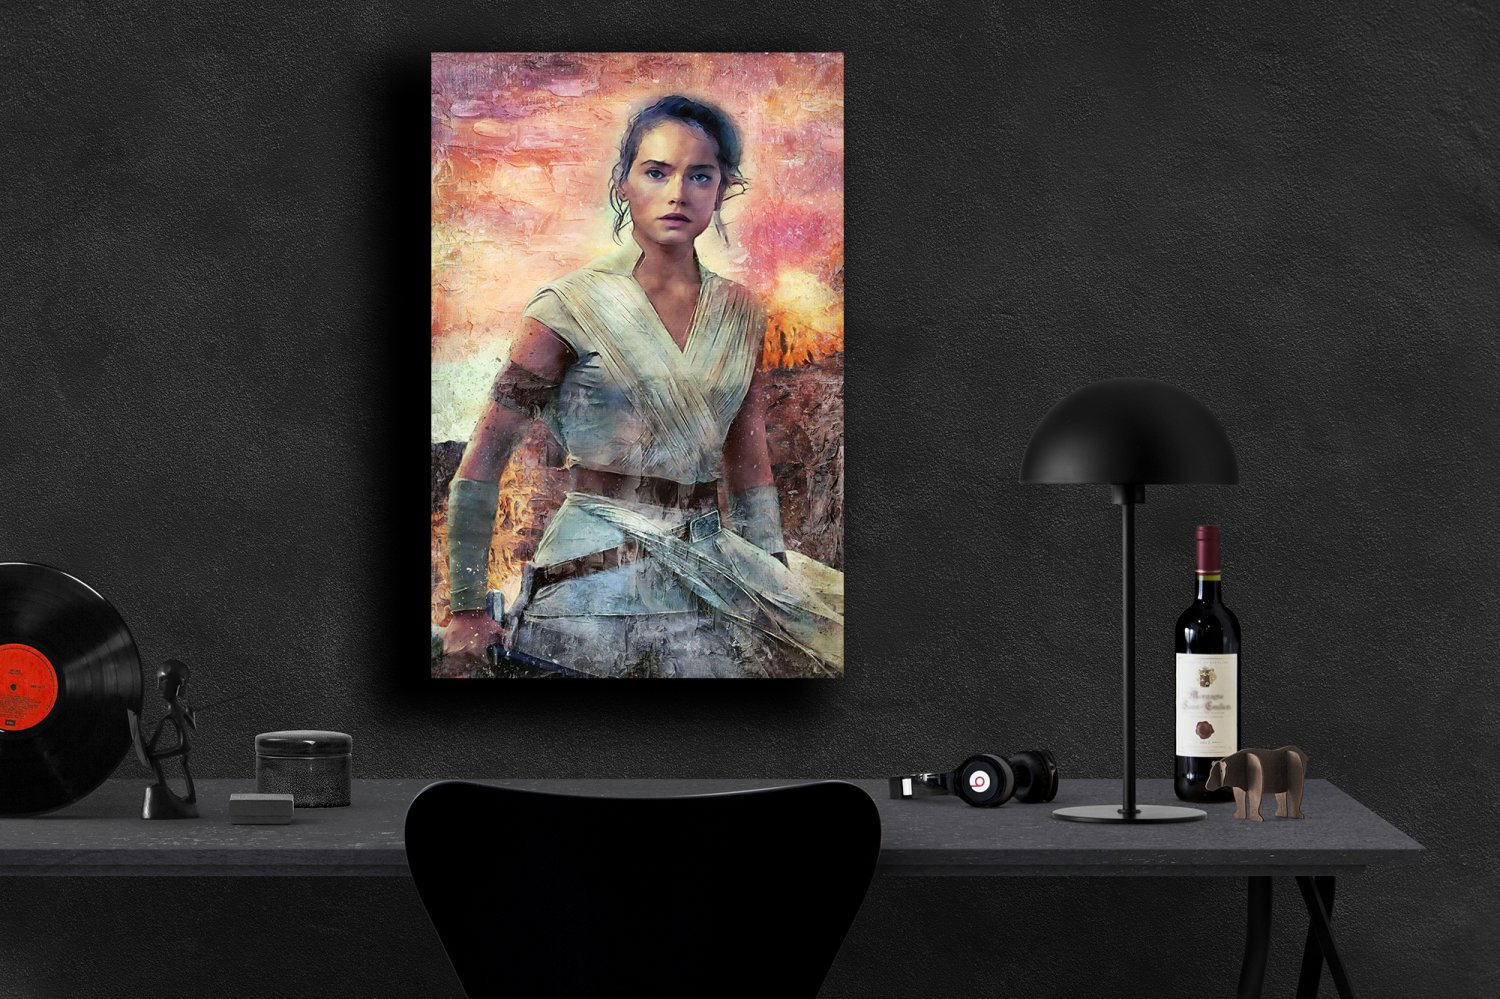 Star Wars The Rise of Skywalker, Rey, Daisy Ridley  18x28 inches Poster Print